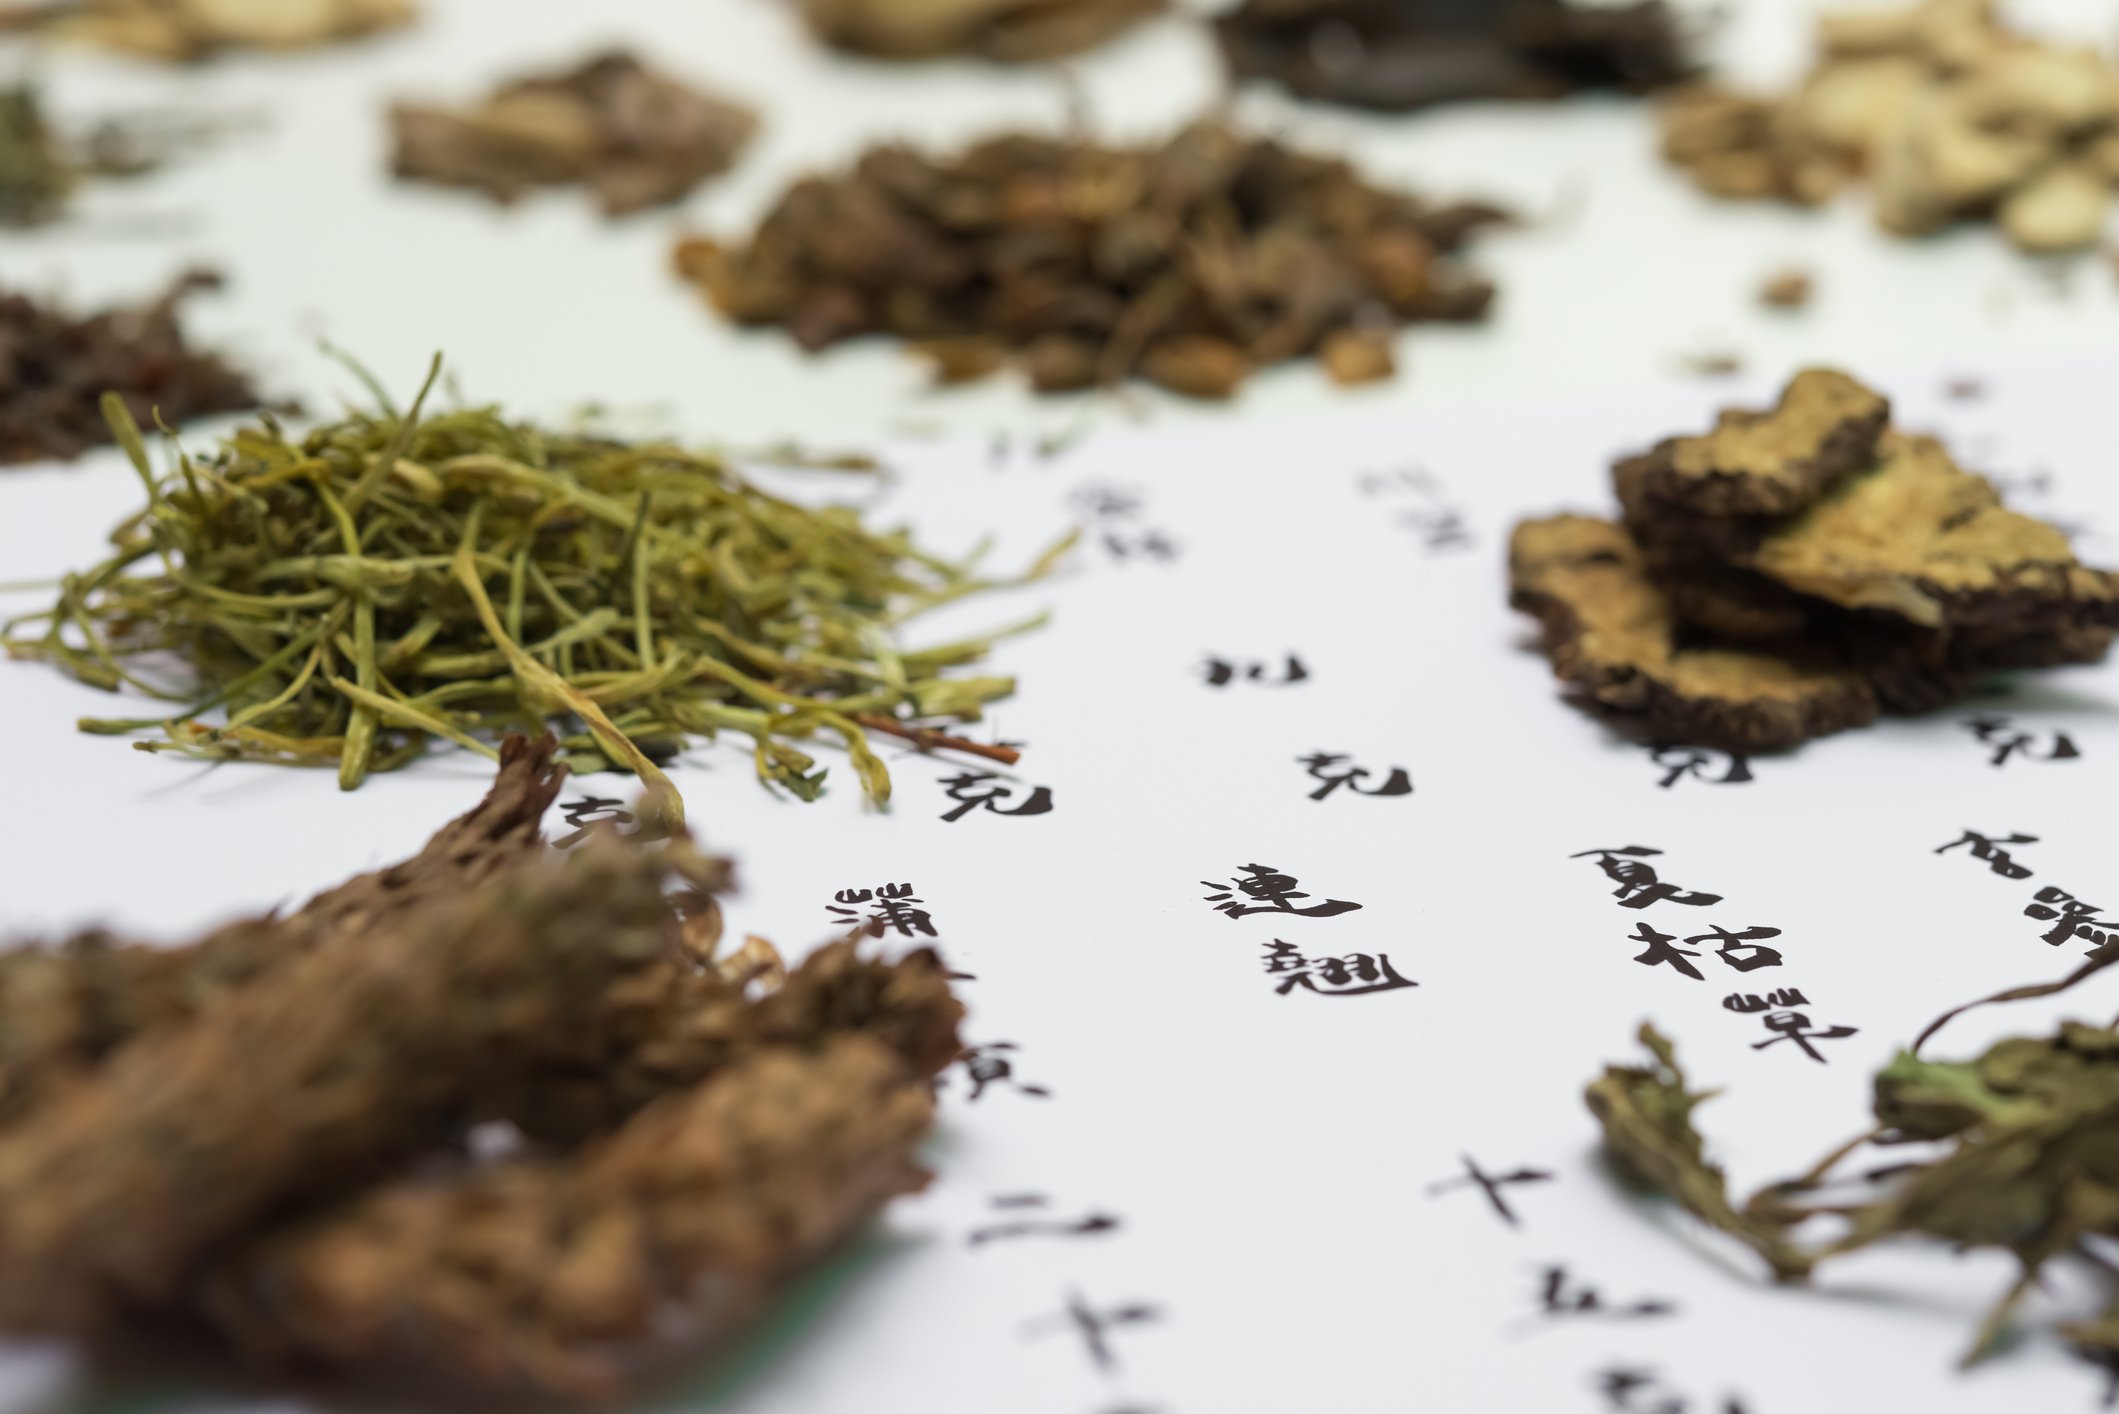 Chinese Herbs - Chinese herbal medicine treats the root (underlying cause) and branch (symptoms) of an illness. Chinese Herbs is another approach to address physical, emotional and spiritual issues.